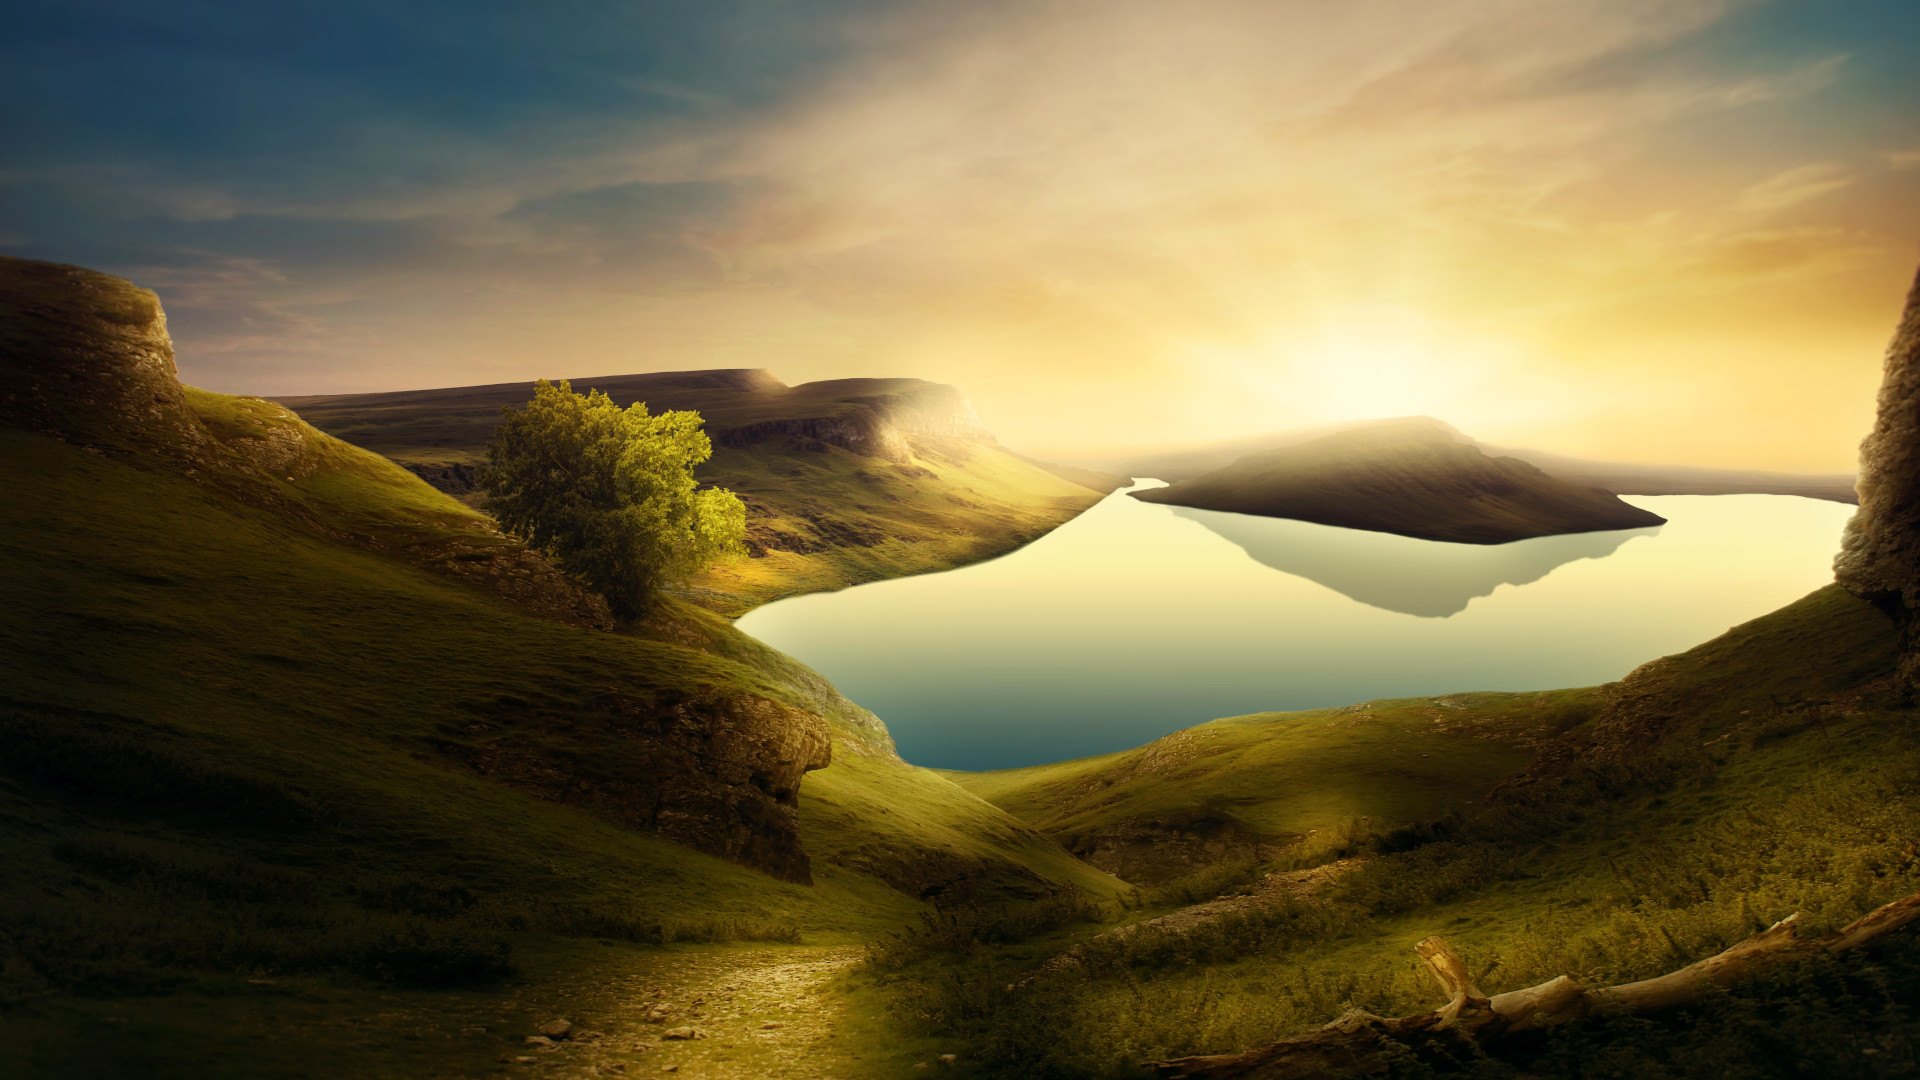 Dreamland landscape wallpaper 1920x1080